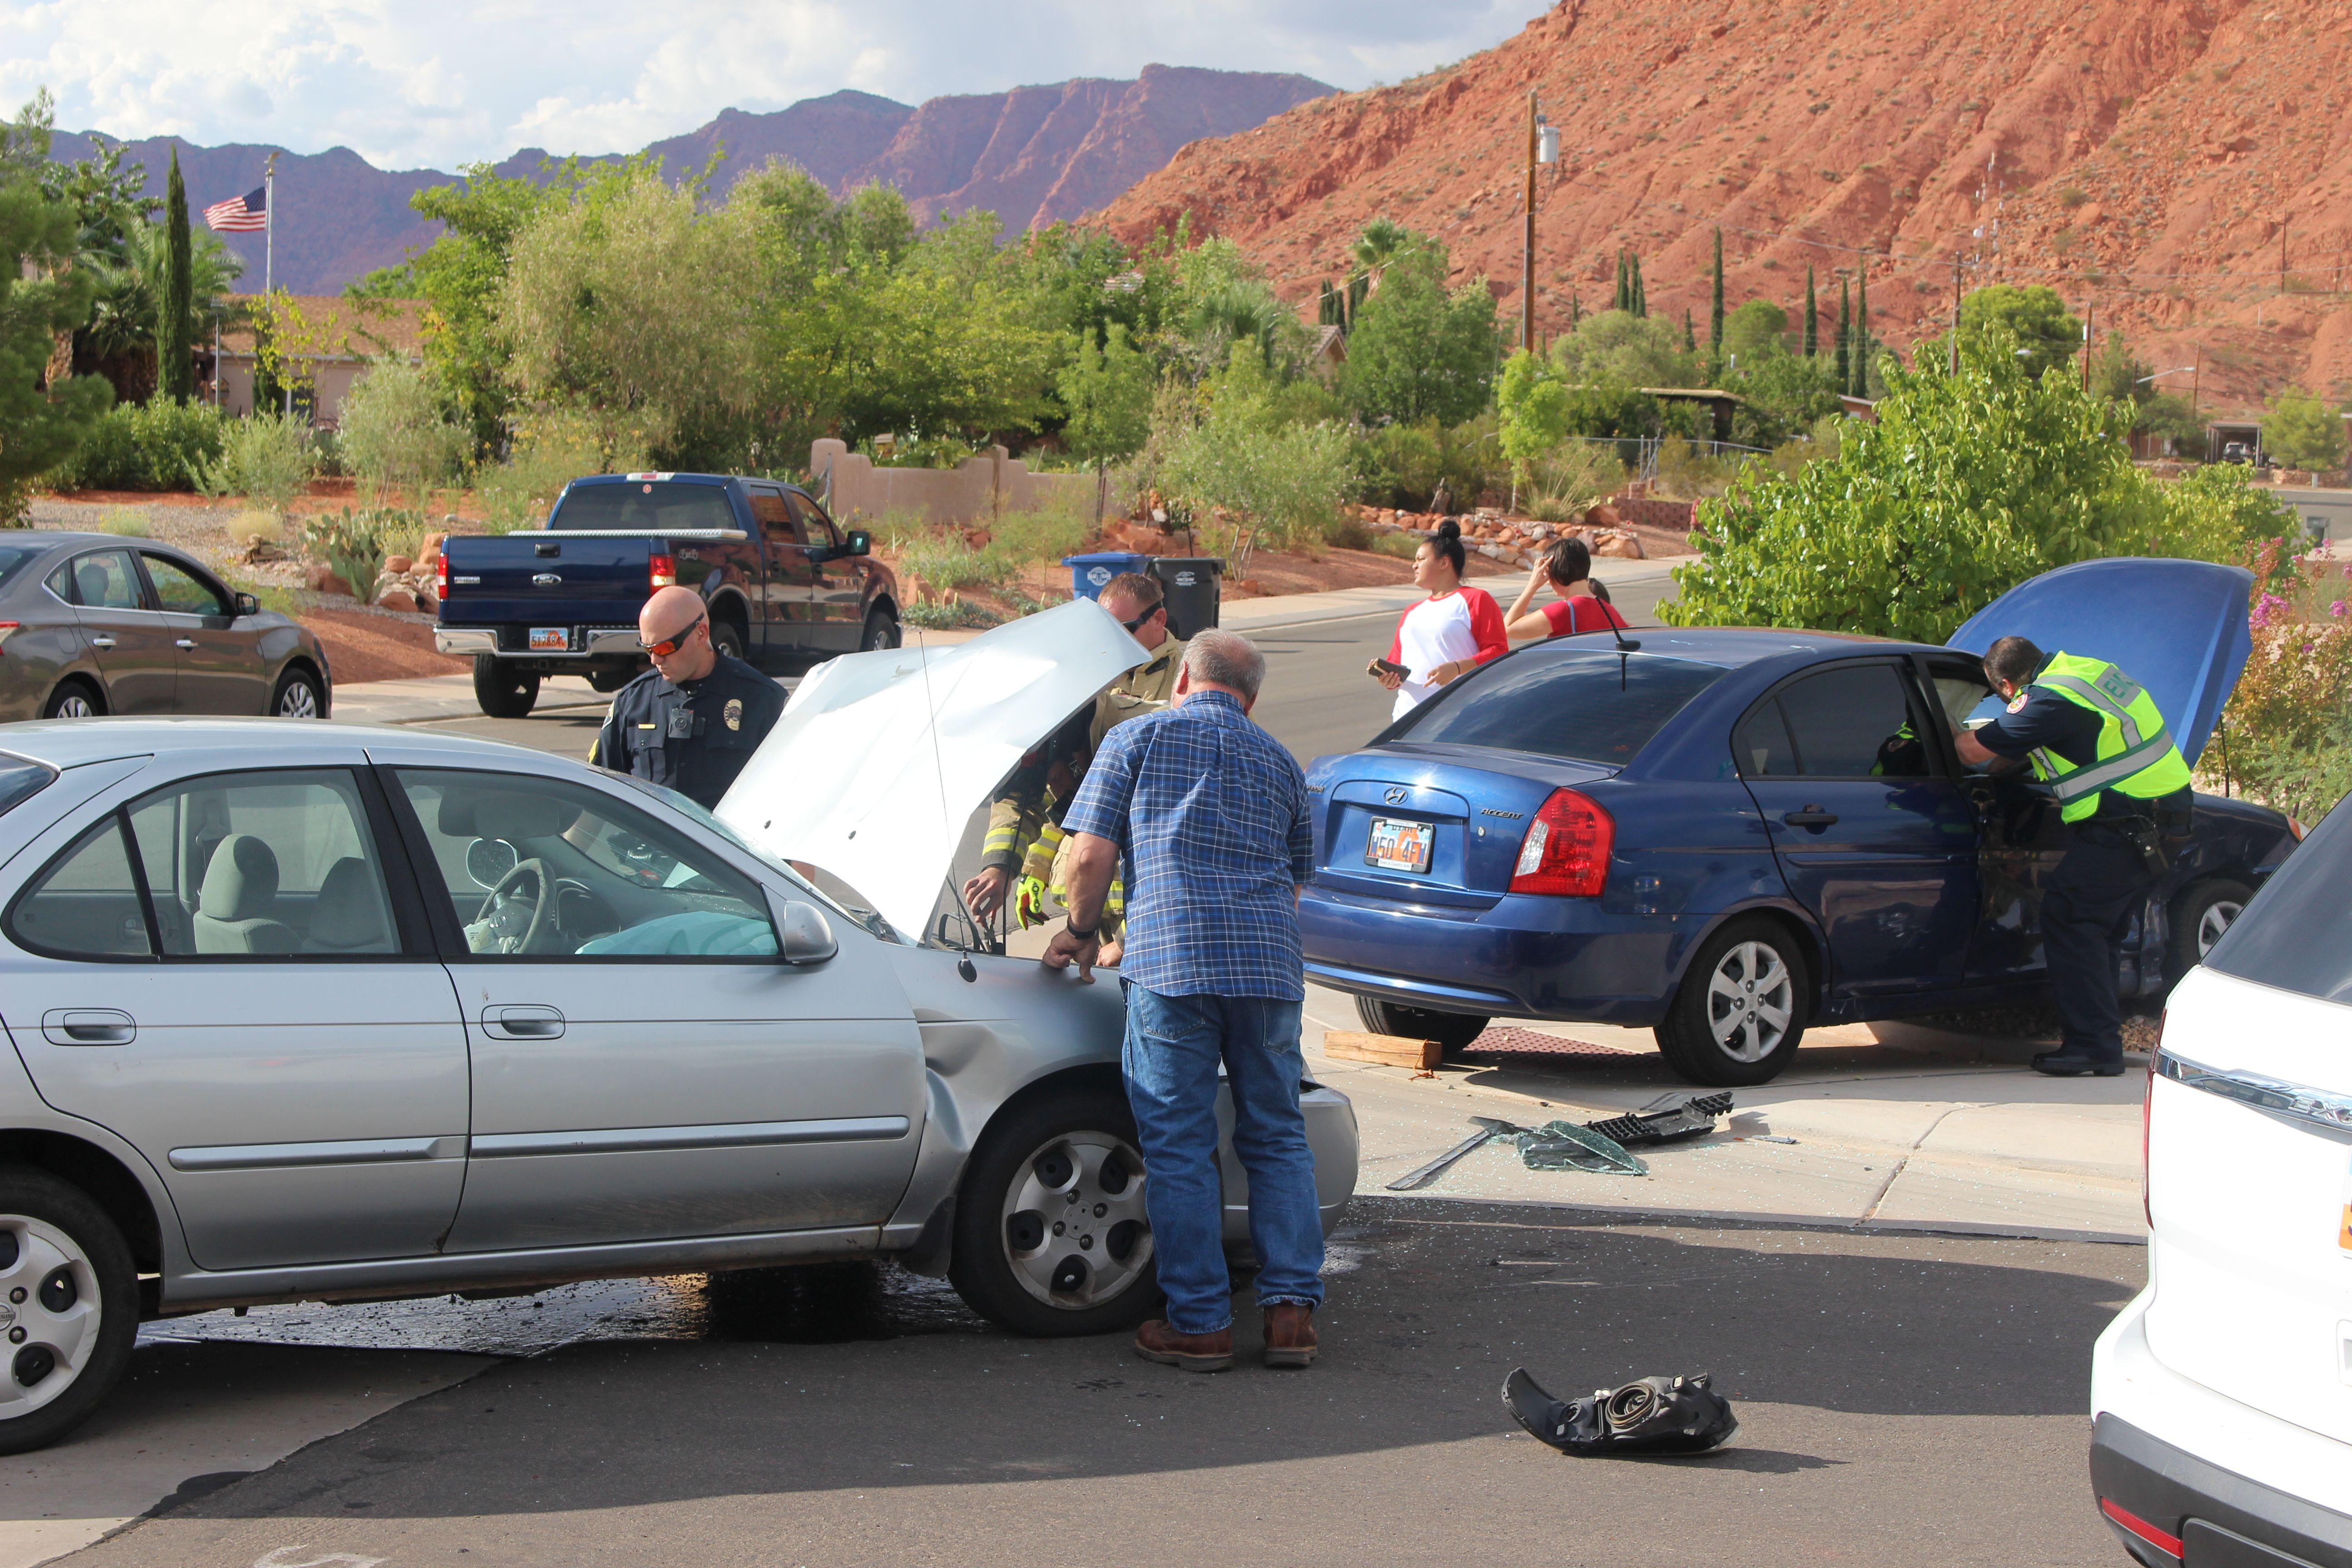 A woman was transported to the hospital following a two-vehicle collision at the intersection of 200 North and Main Street. Ivins, Utah, Aug. 22, 2016 | Photo by Ric Wayman, St. George News